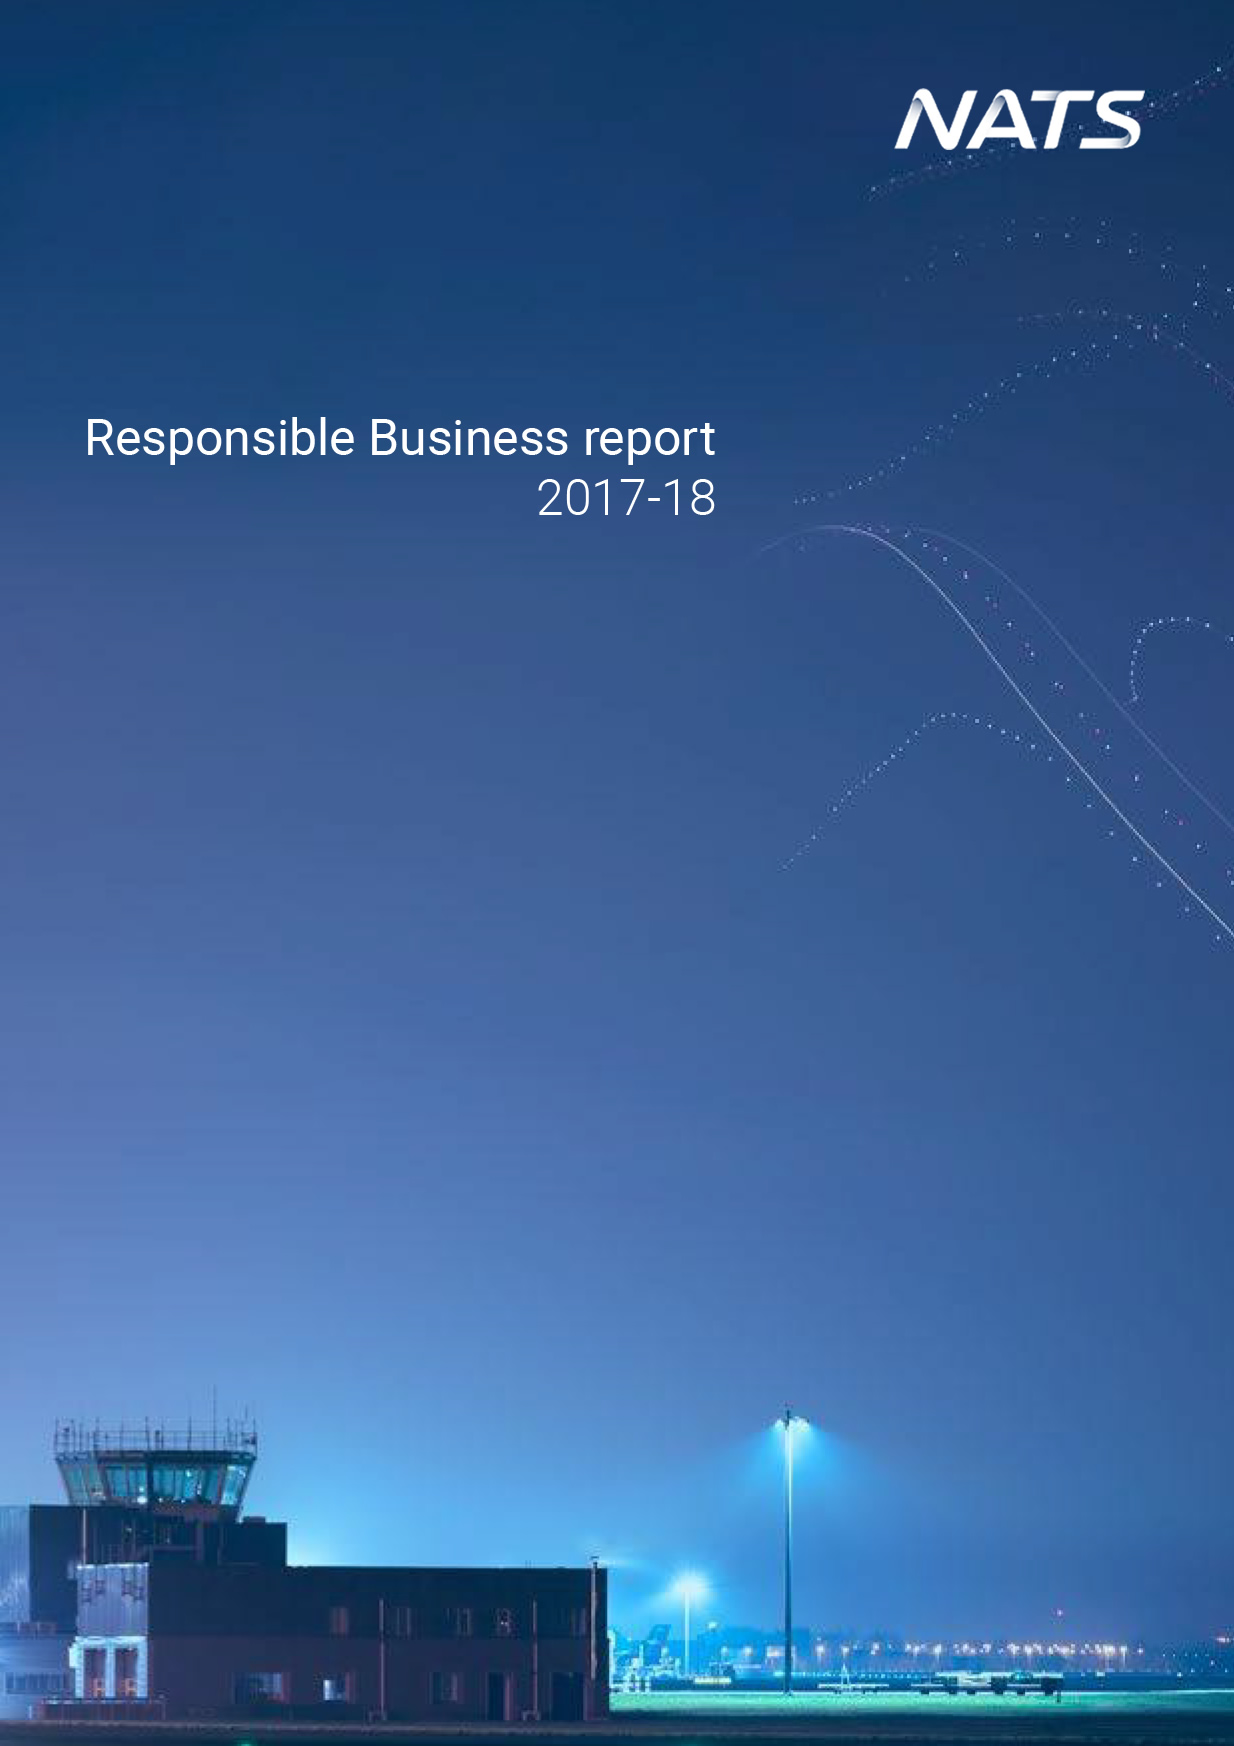 Responsible Business Report 2017-18